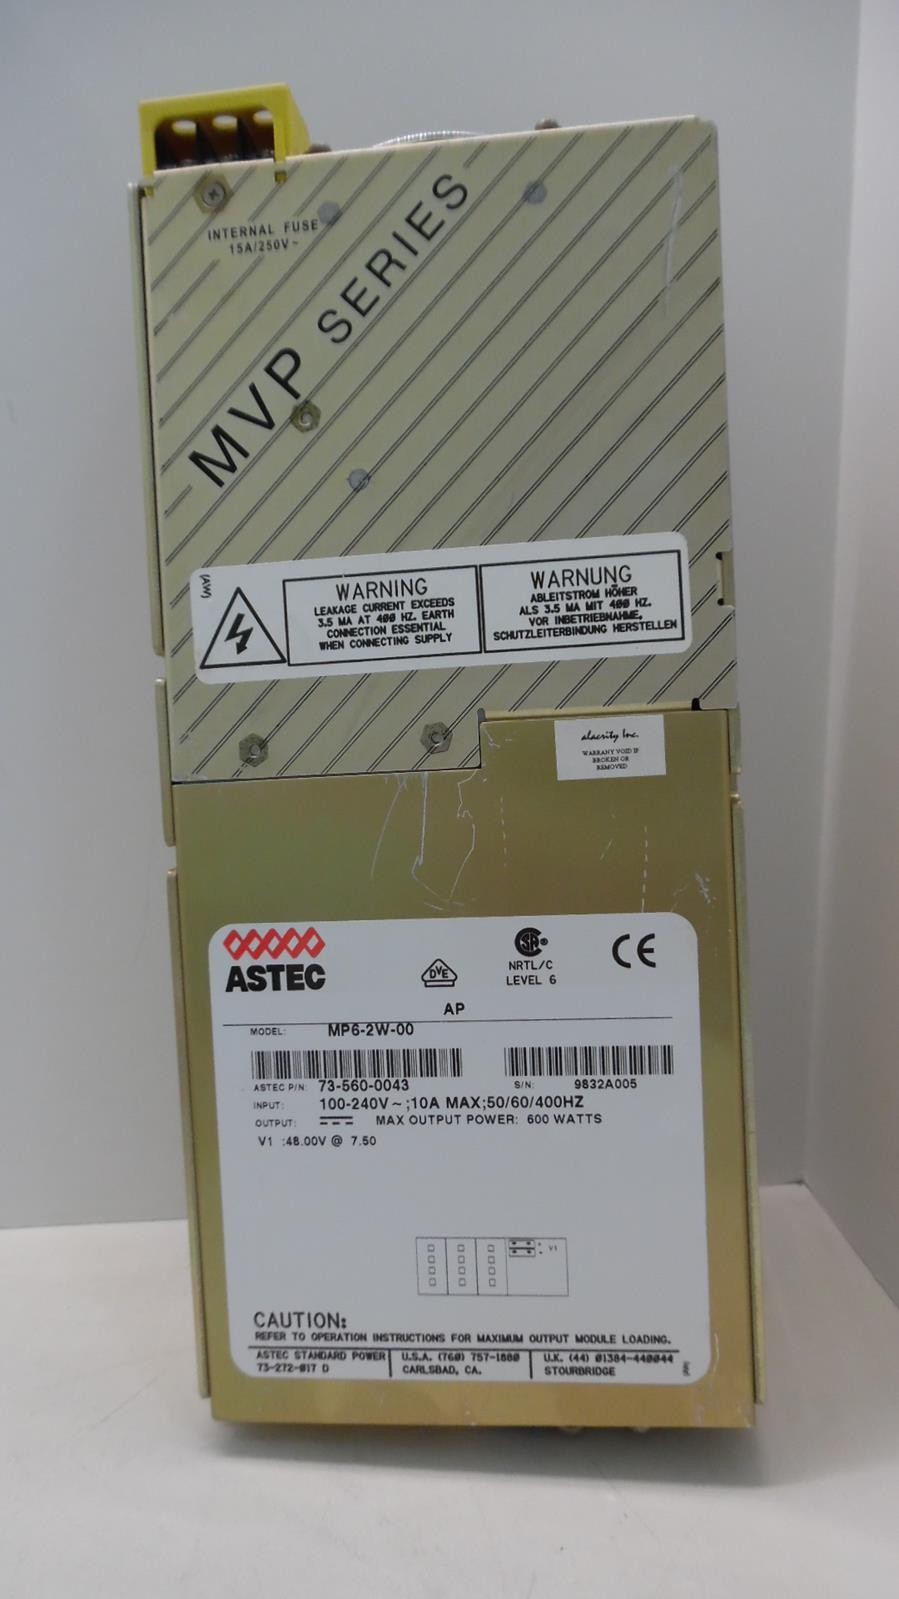 37259-MP6-2W-00_POWER_SUPPLY_208_base